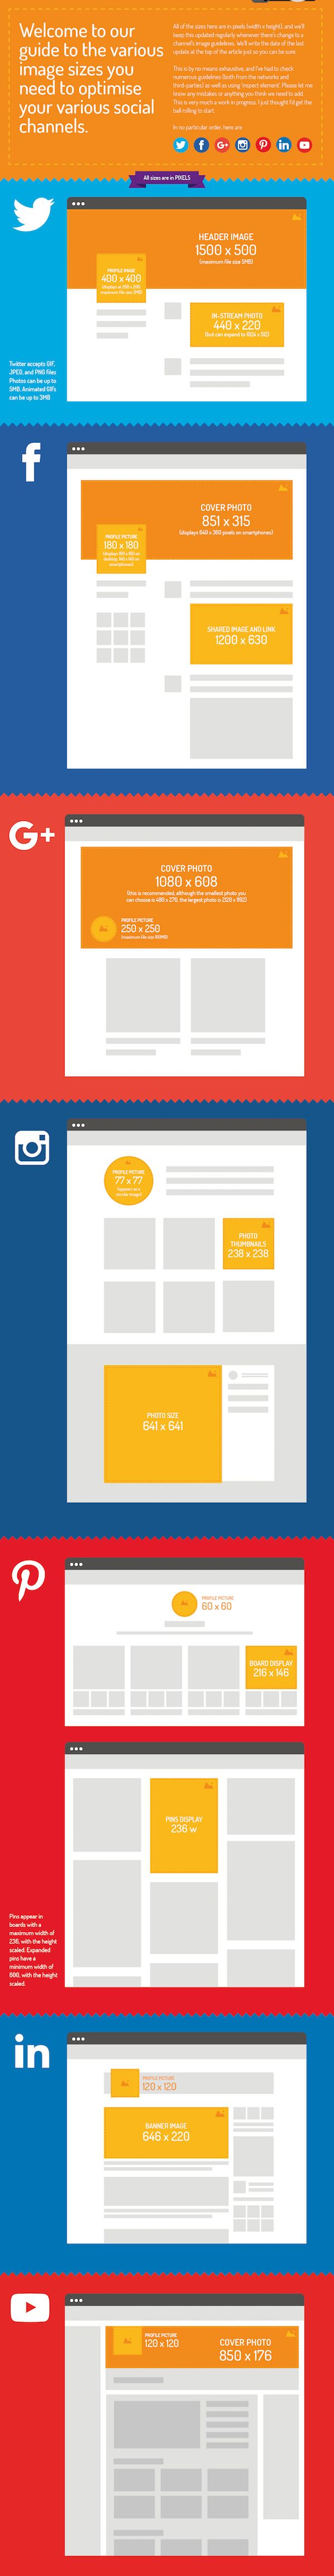 Guideline for you to social media picture measurements [infographic]